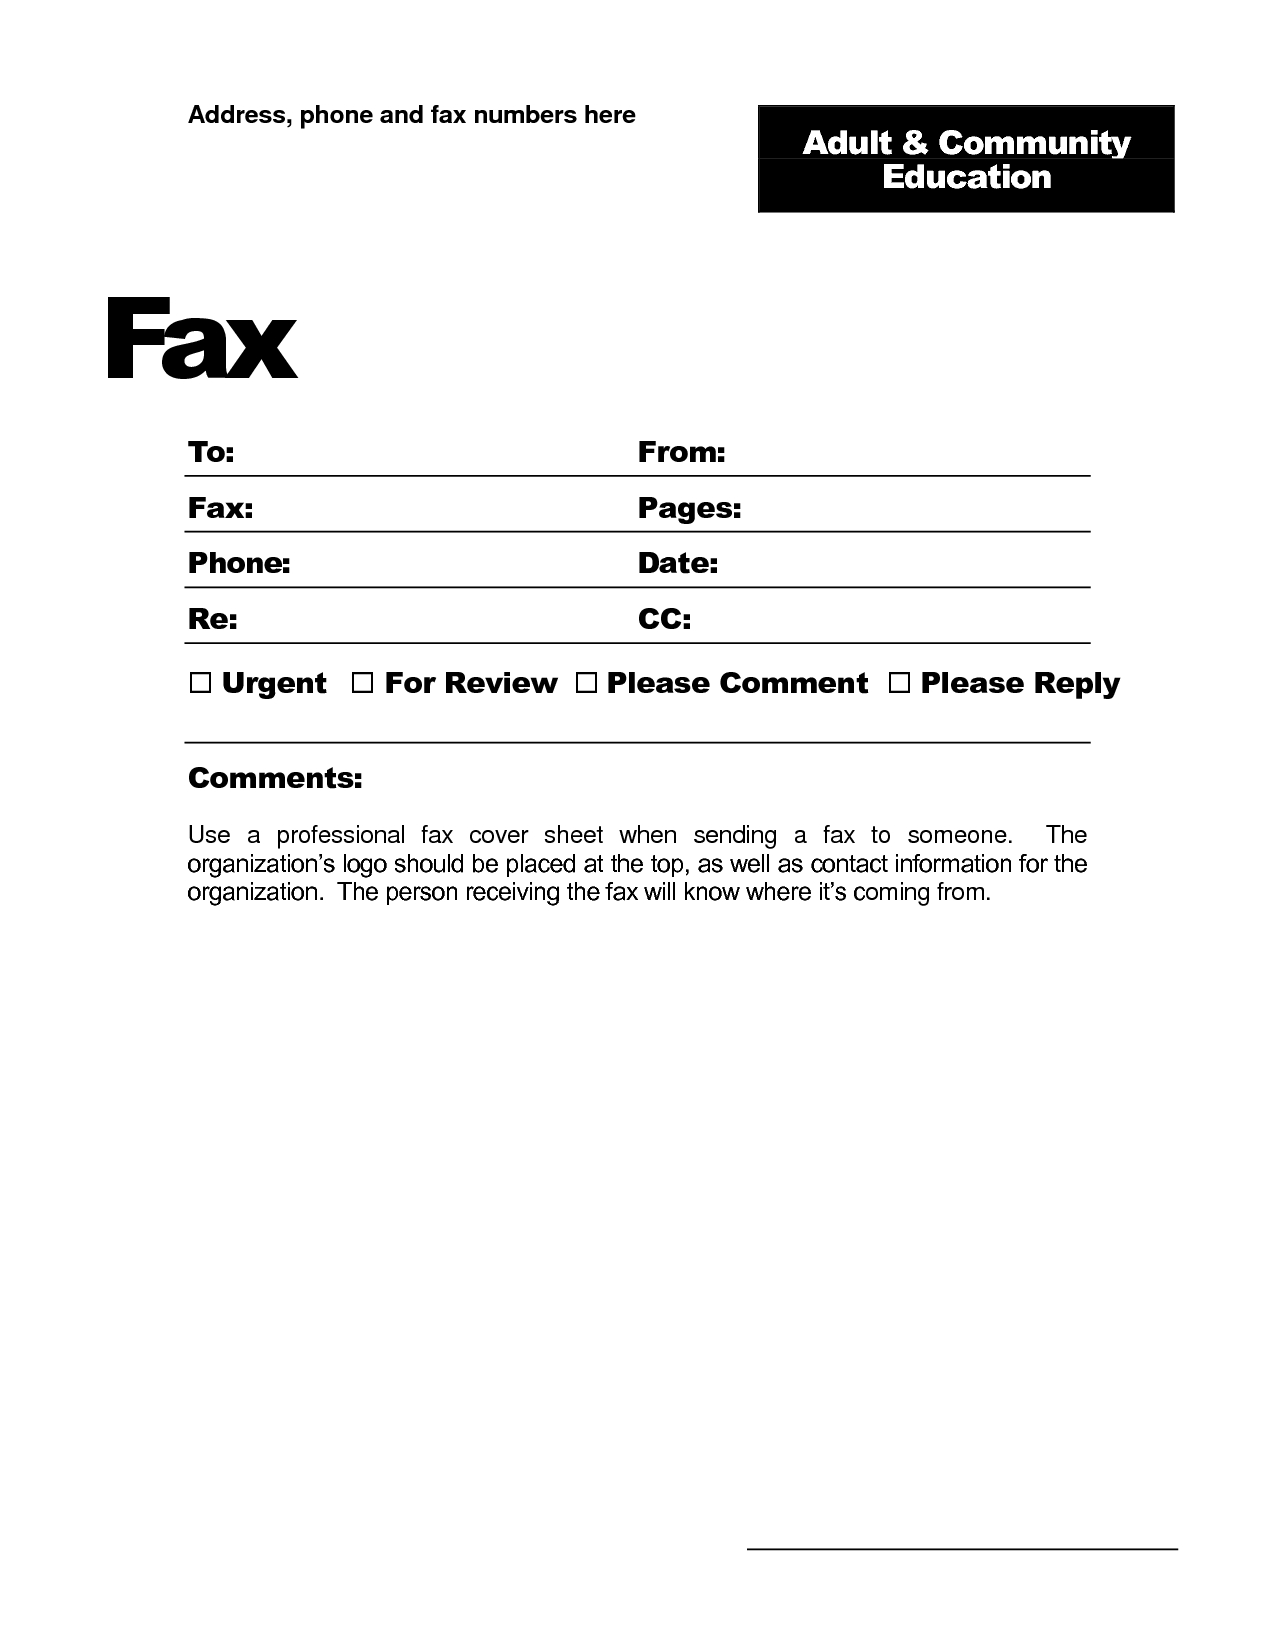 Fax Template Word 2010 - Free Download In Fax Template Word 2010